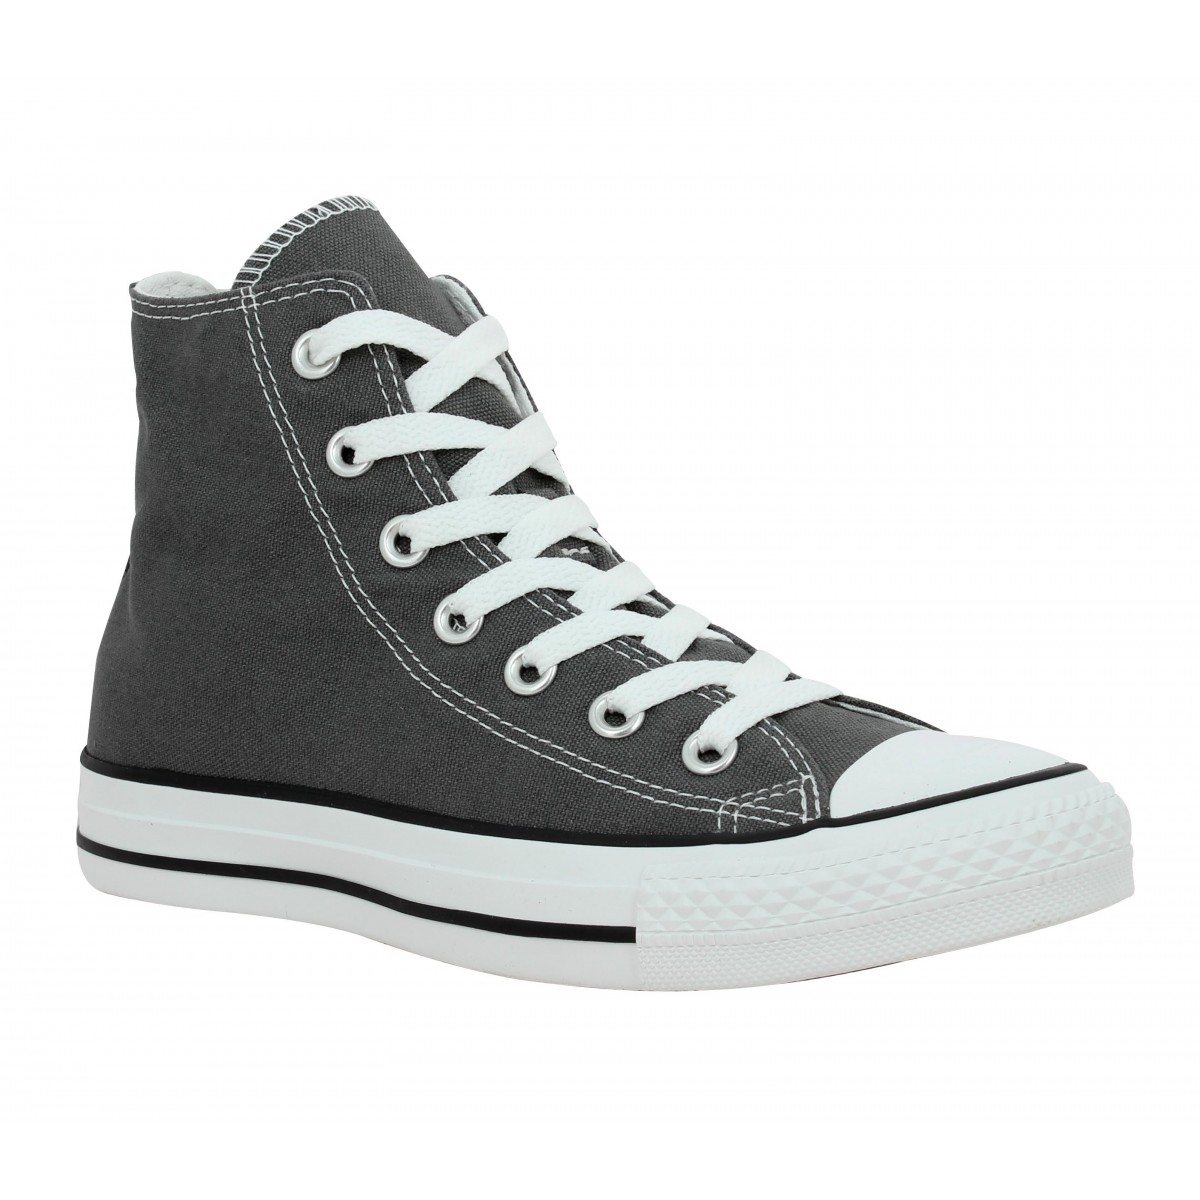 Baskets CONVERSE Chuck Taylor All Star Hi toile Homme Anthracite